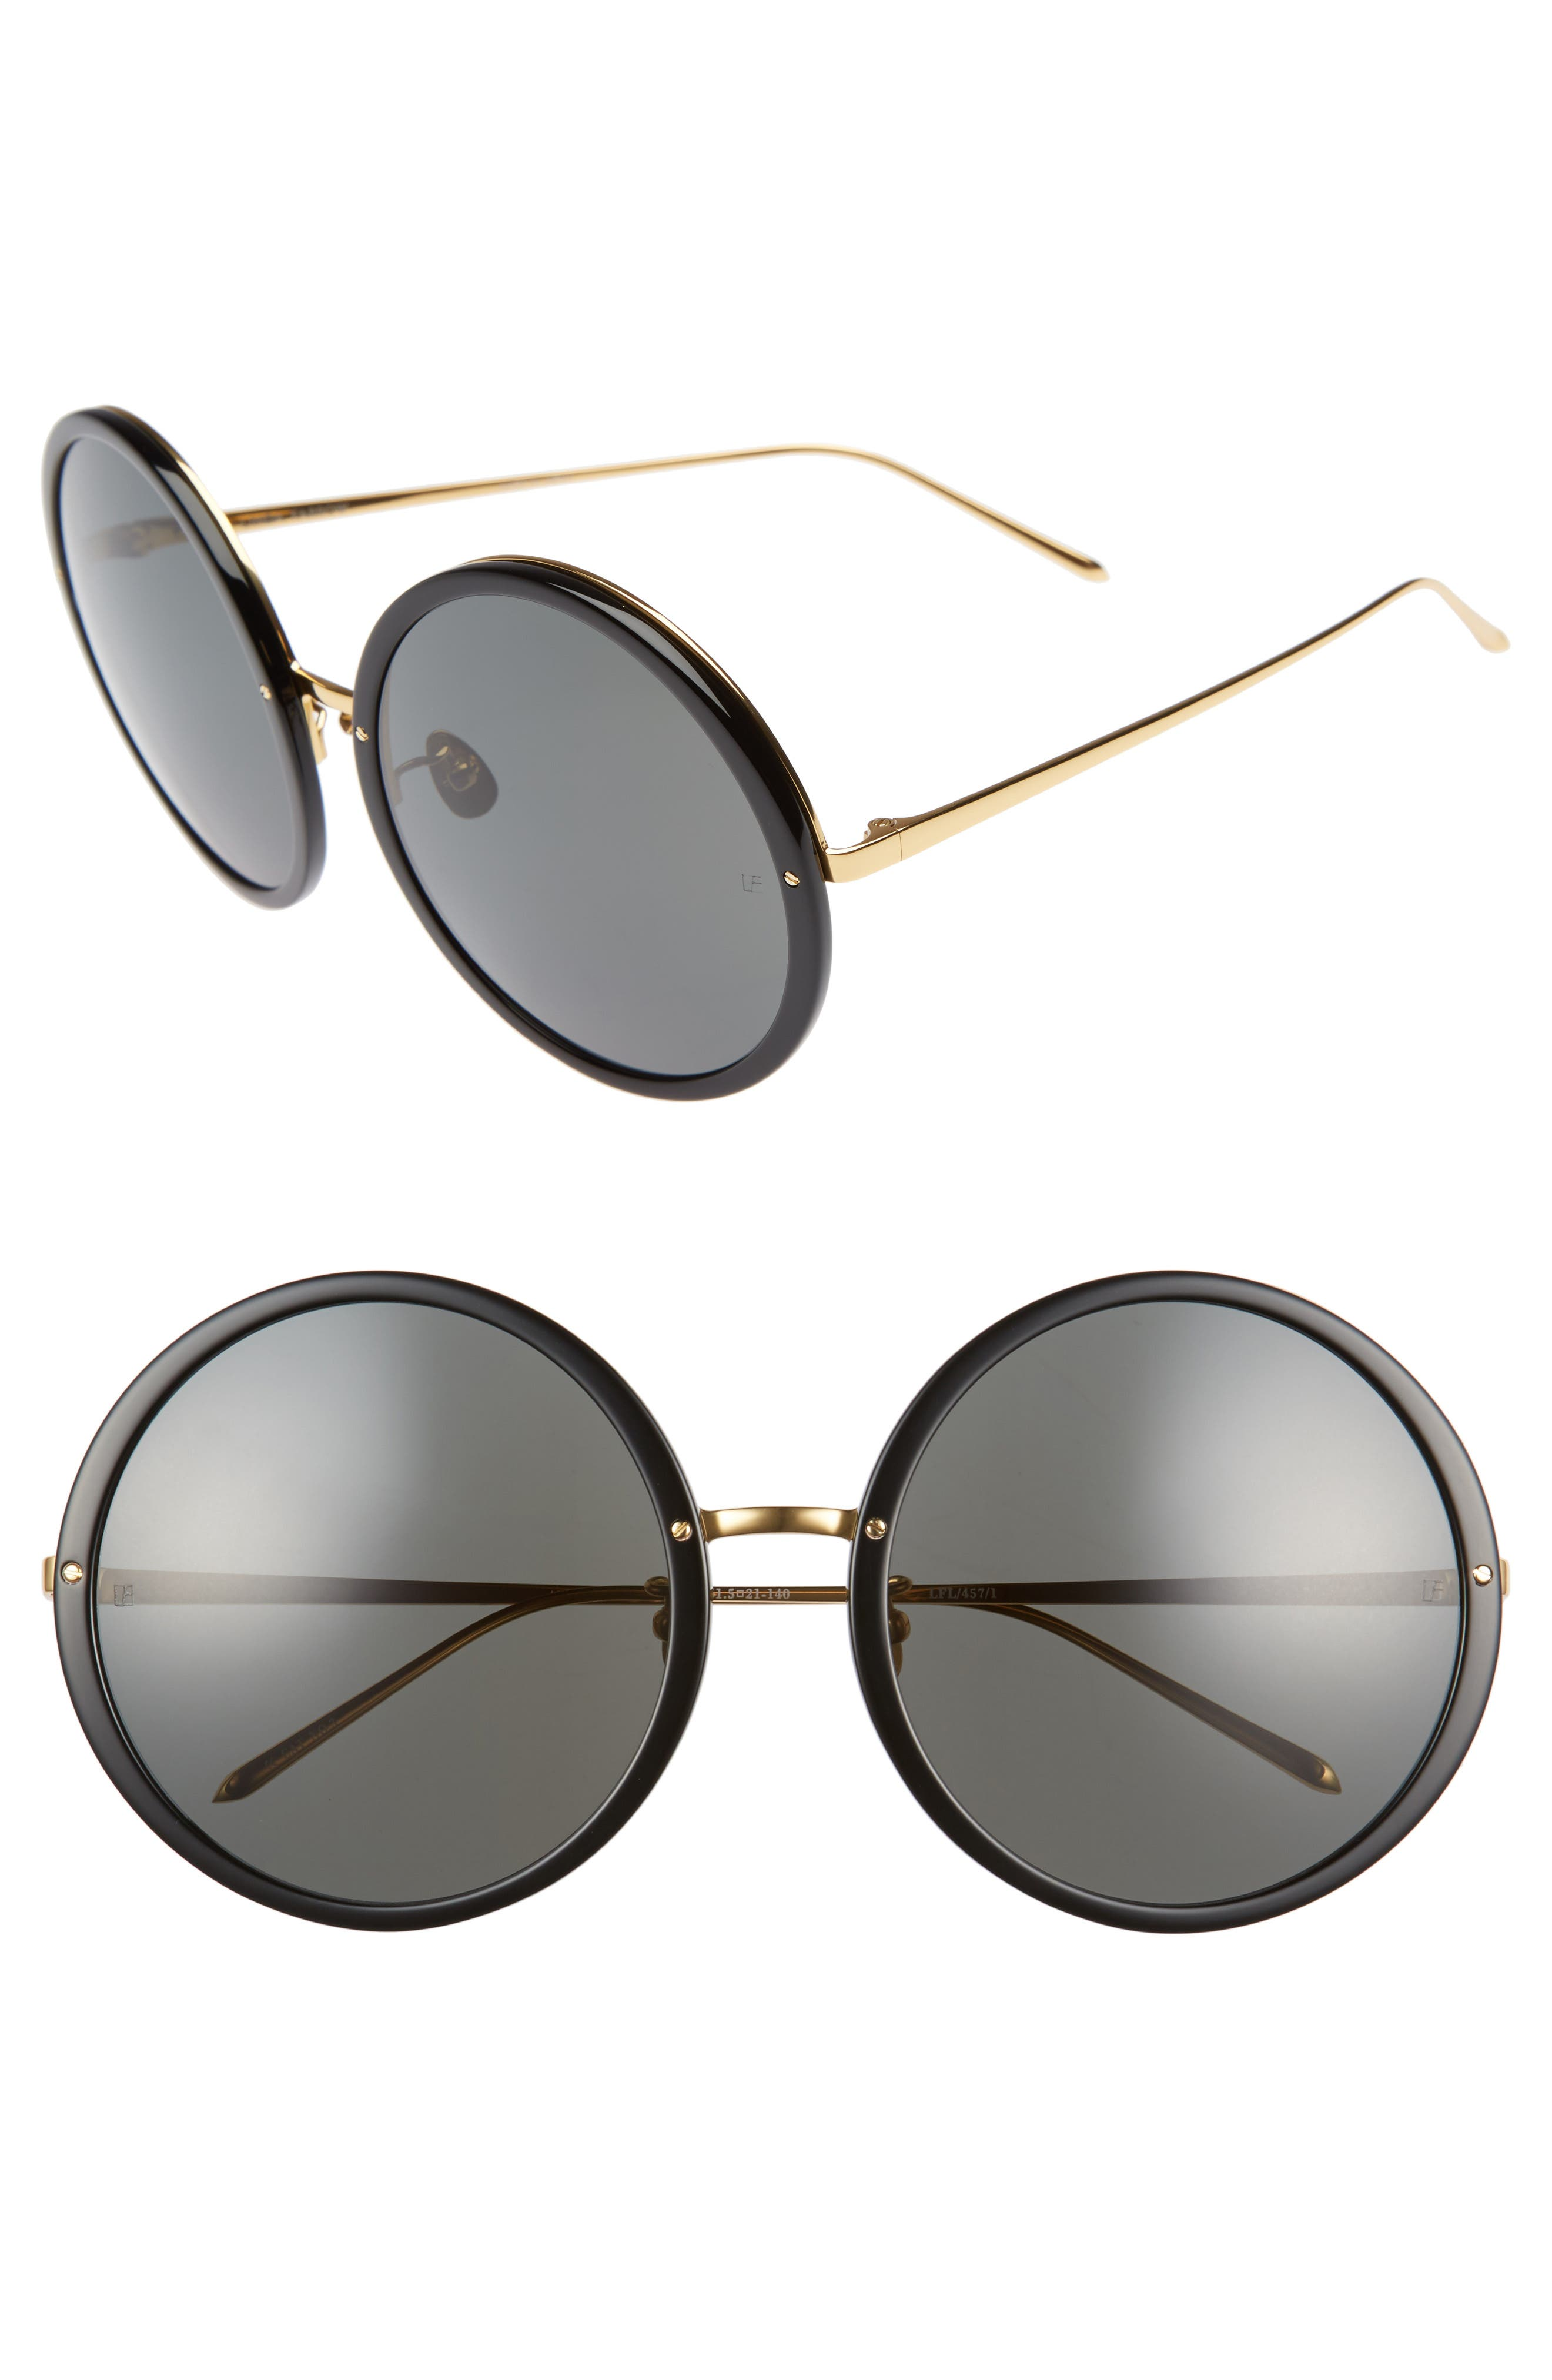 61mm Round 18 Karat Gold Trim Sunglasses,                             Main thumbnail 1, color,                             Black/ Yellow Gold/ Grey